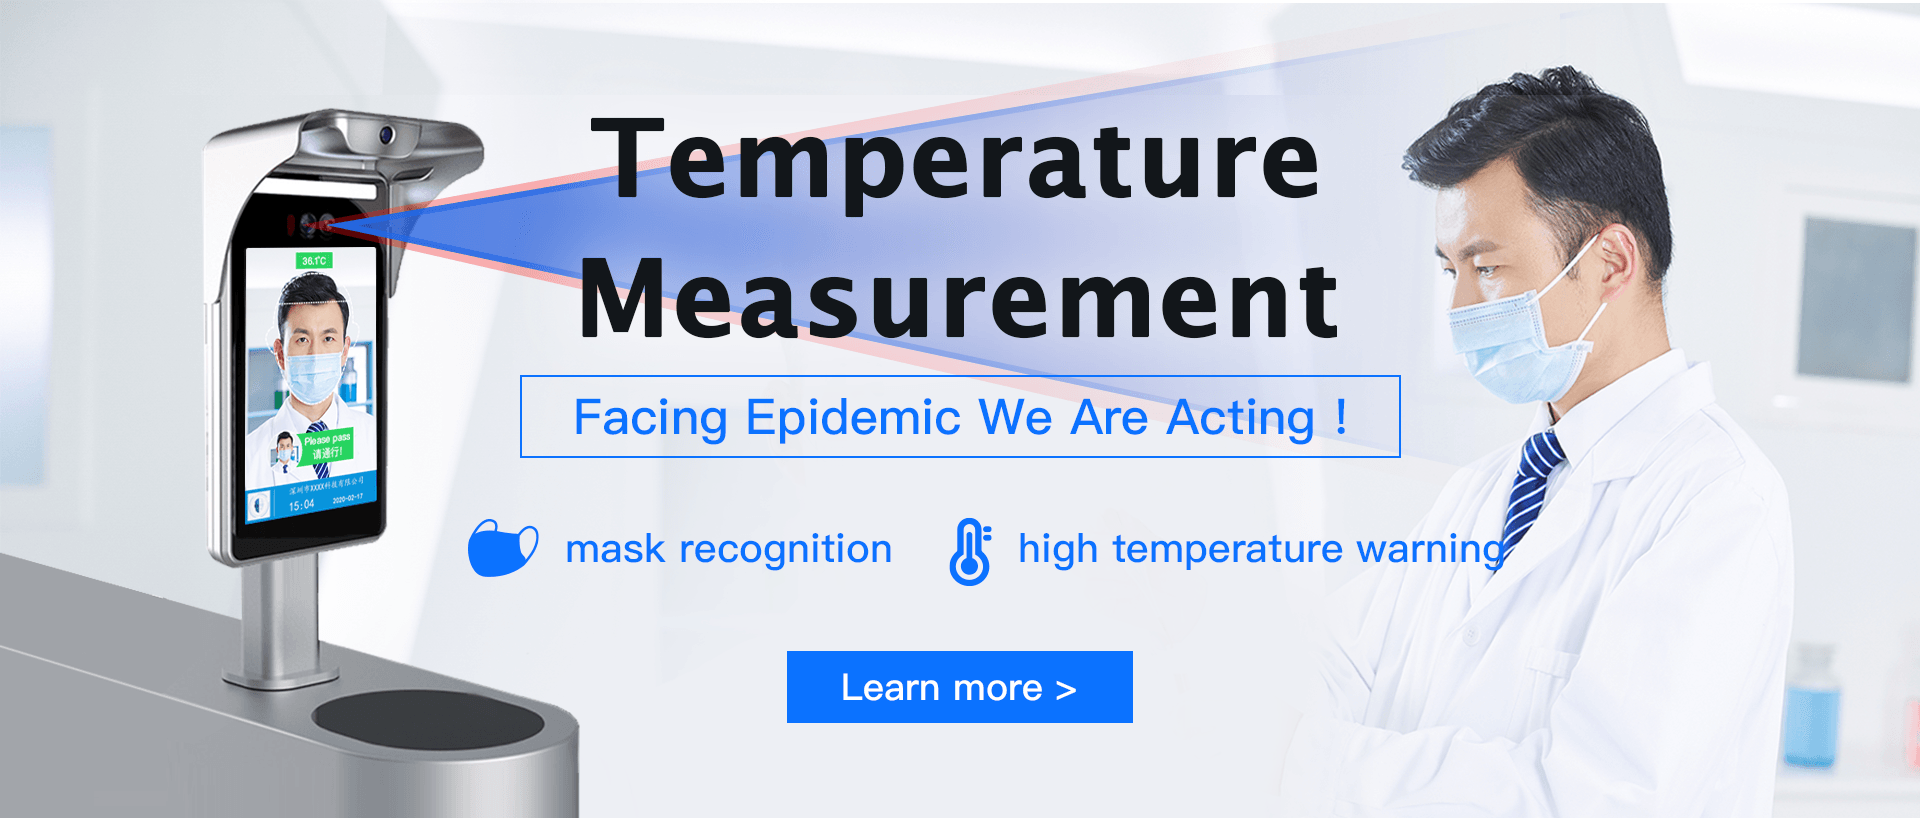 Temperature Measurement, Facing Epidemic We Are Acting! mask recognition, high temperature warning